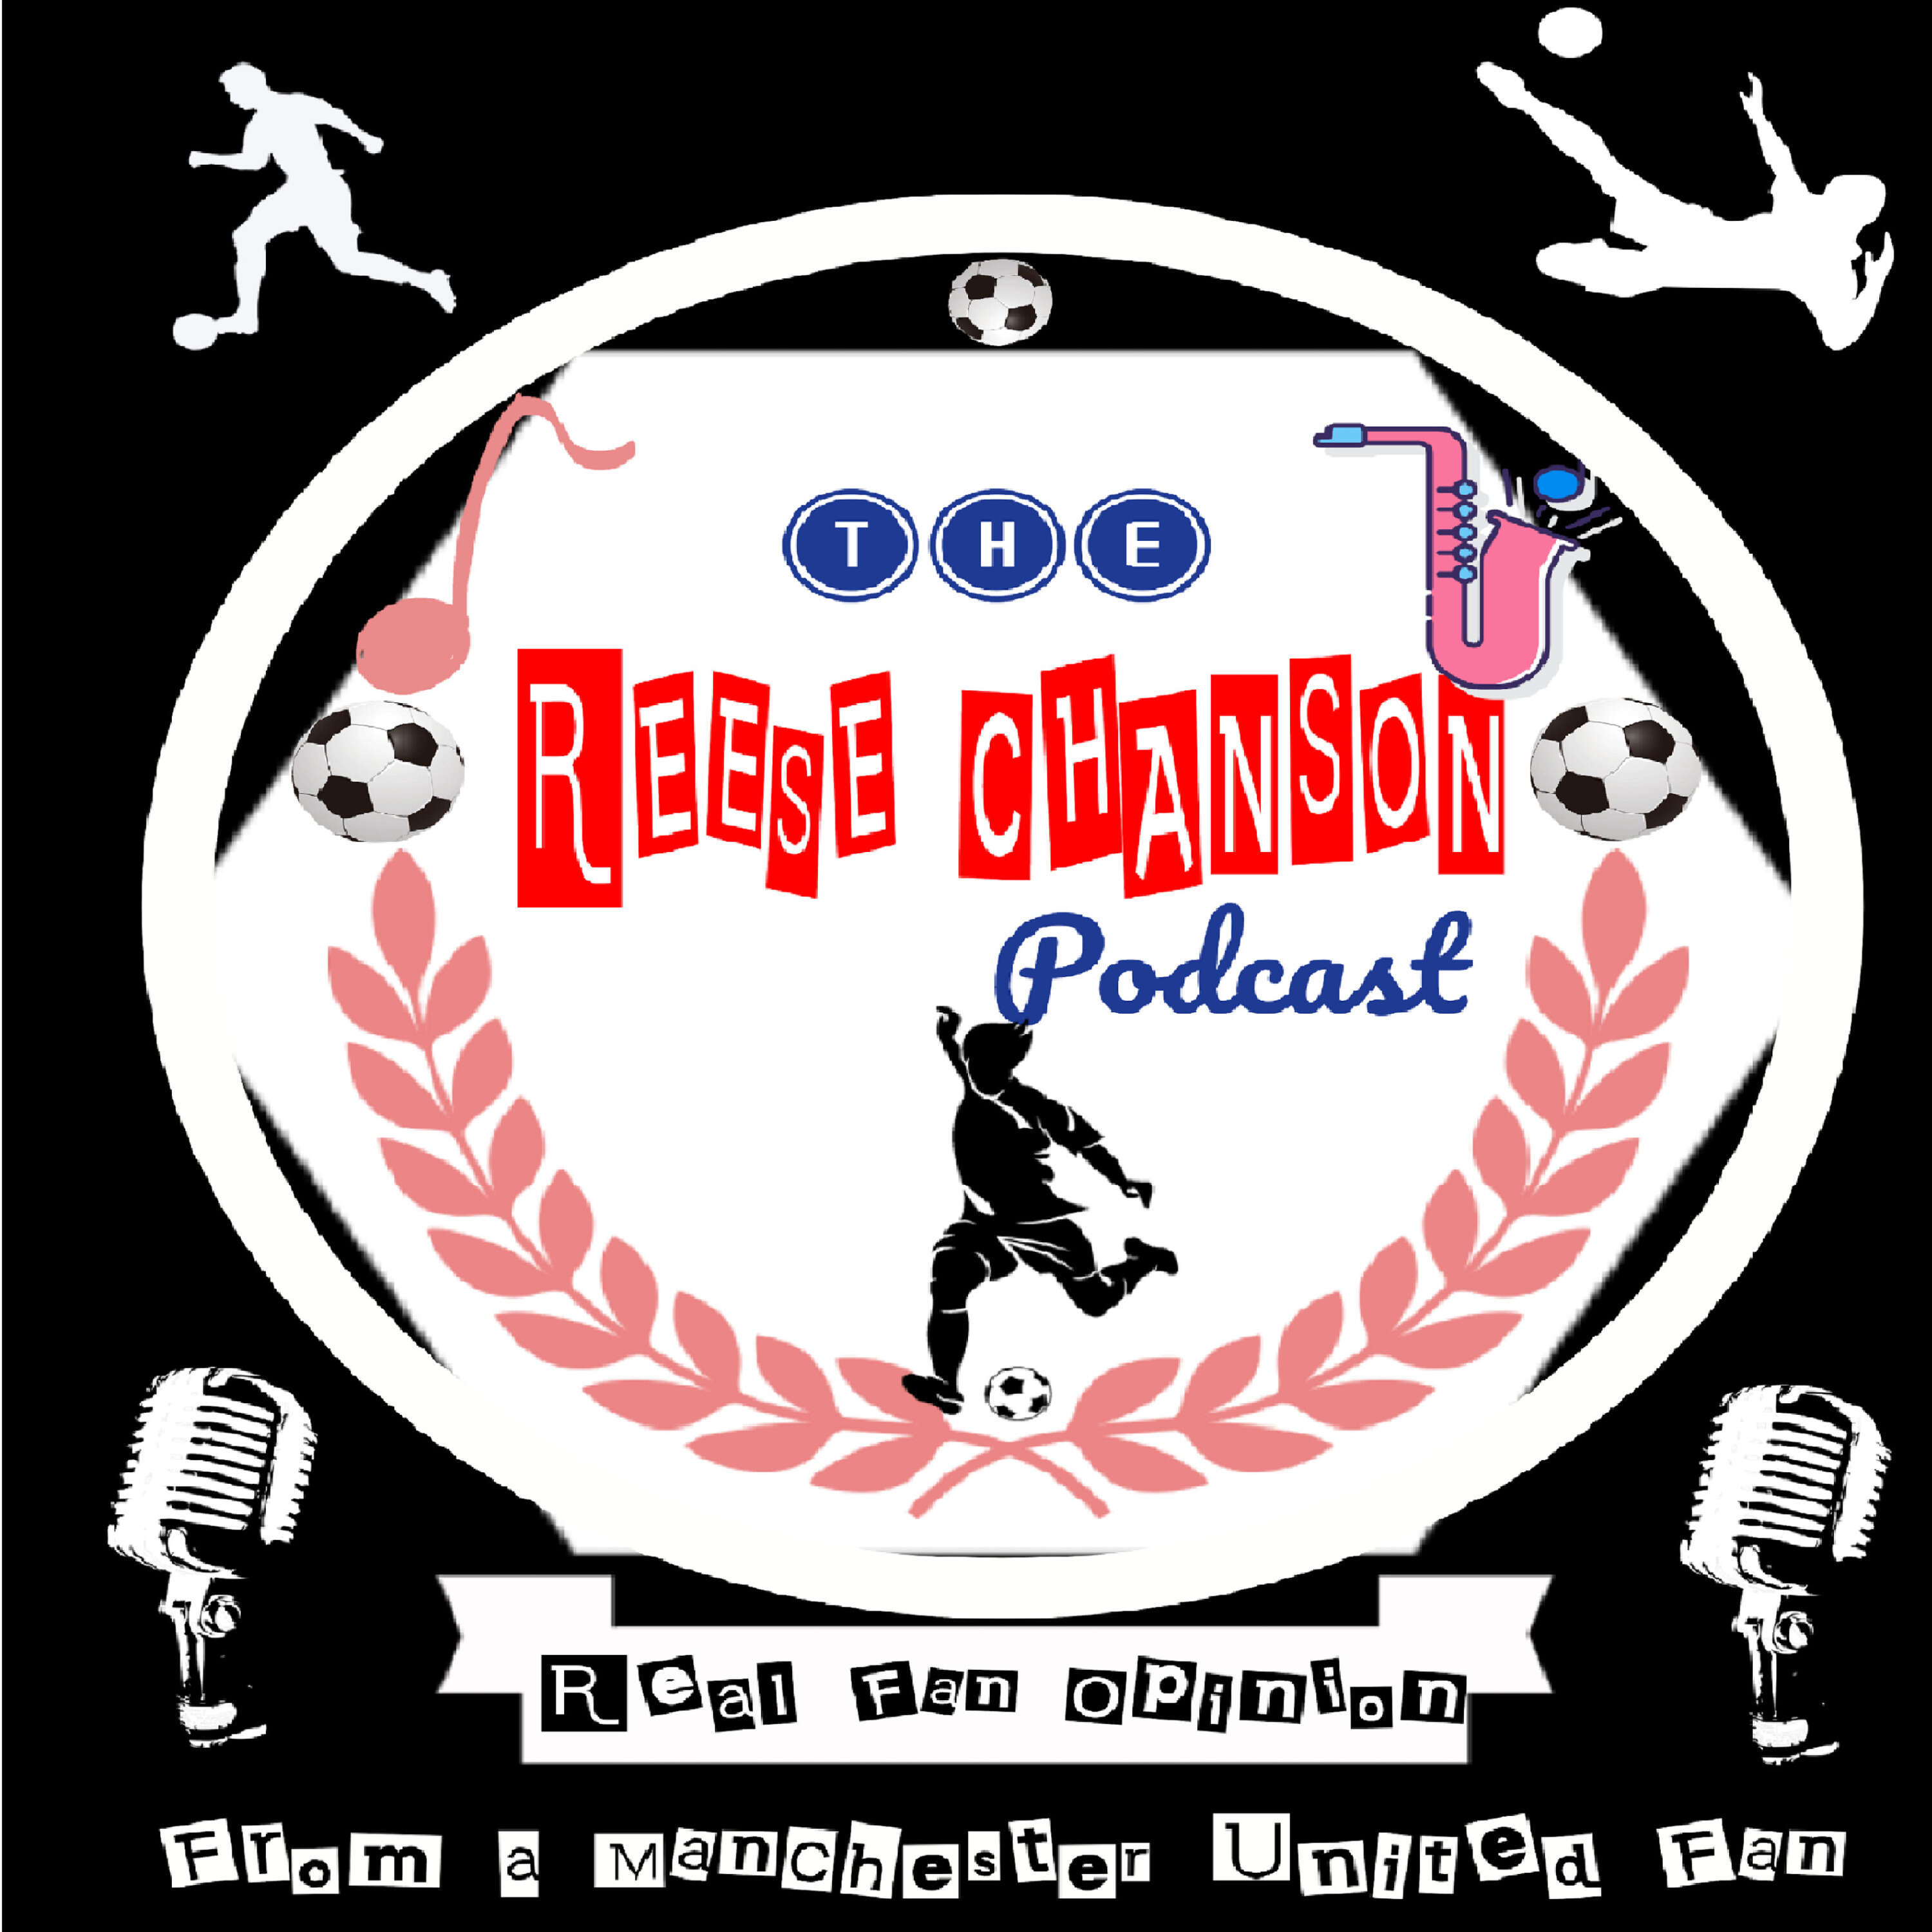 THE REESE CHANSON PODCAST podcast